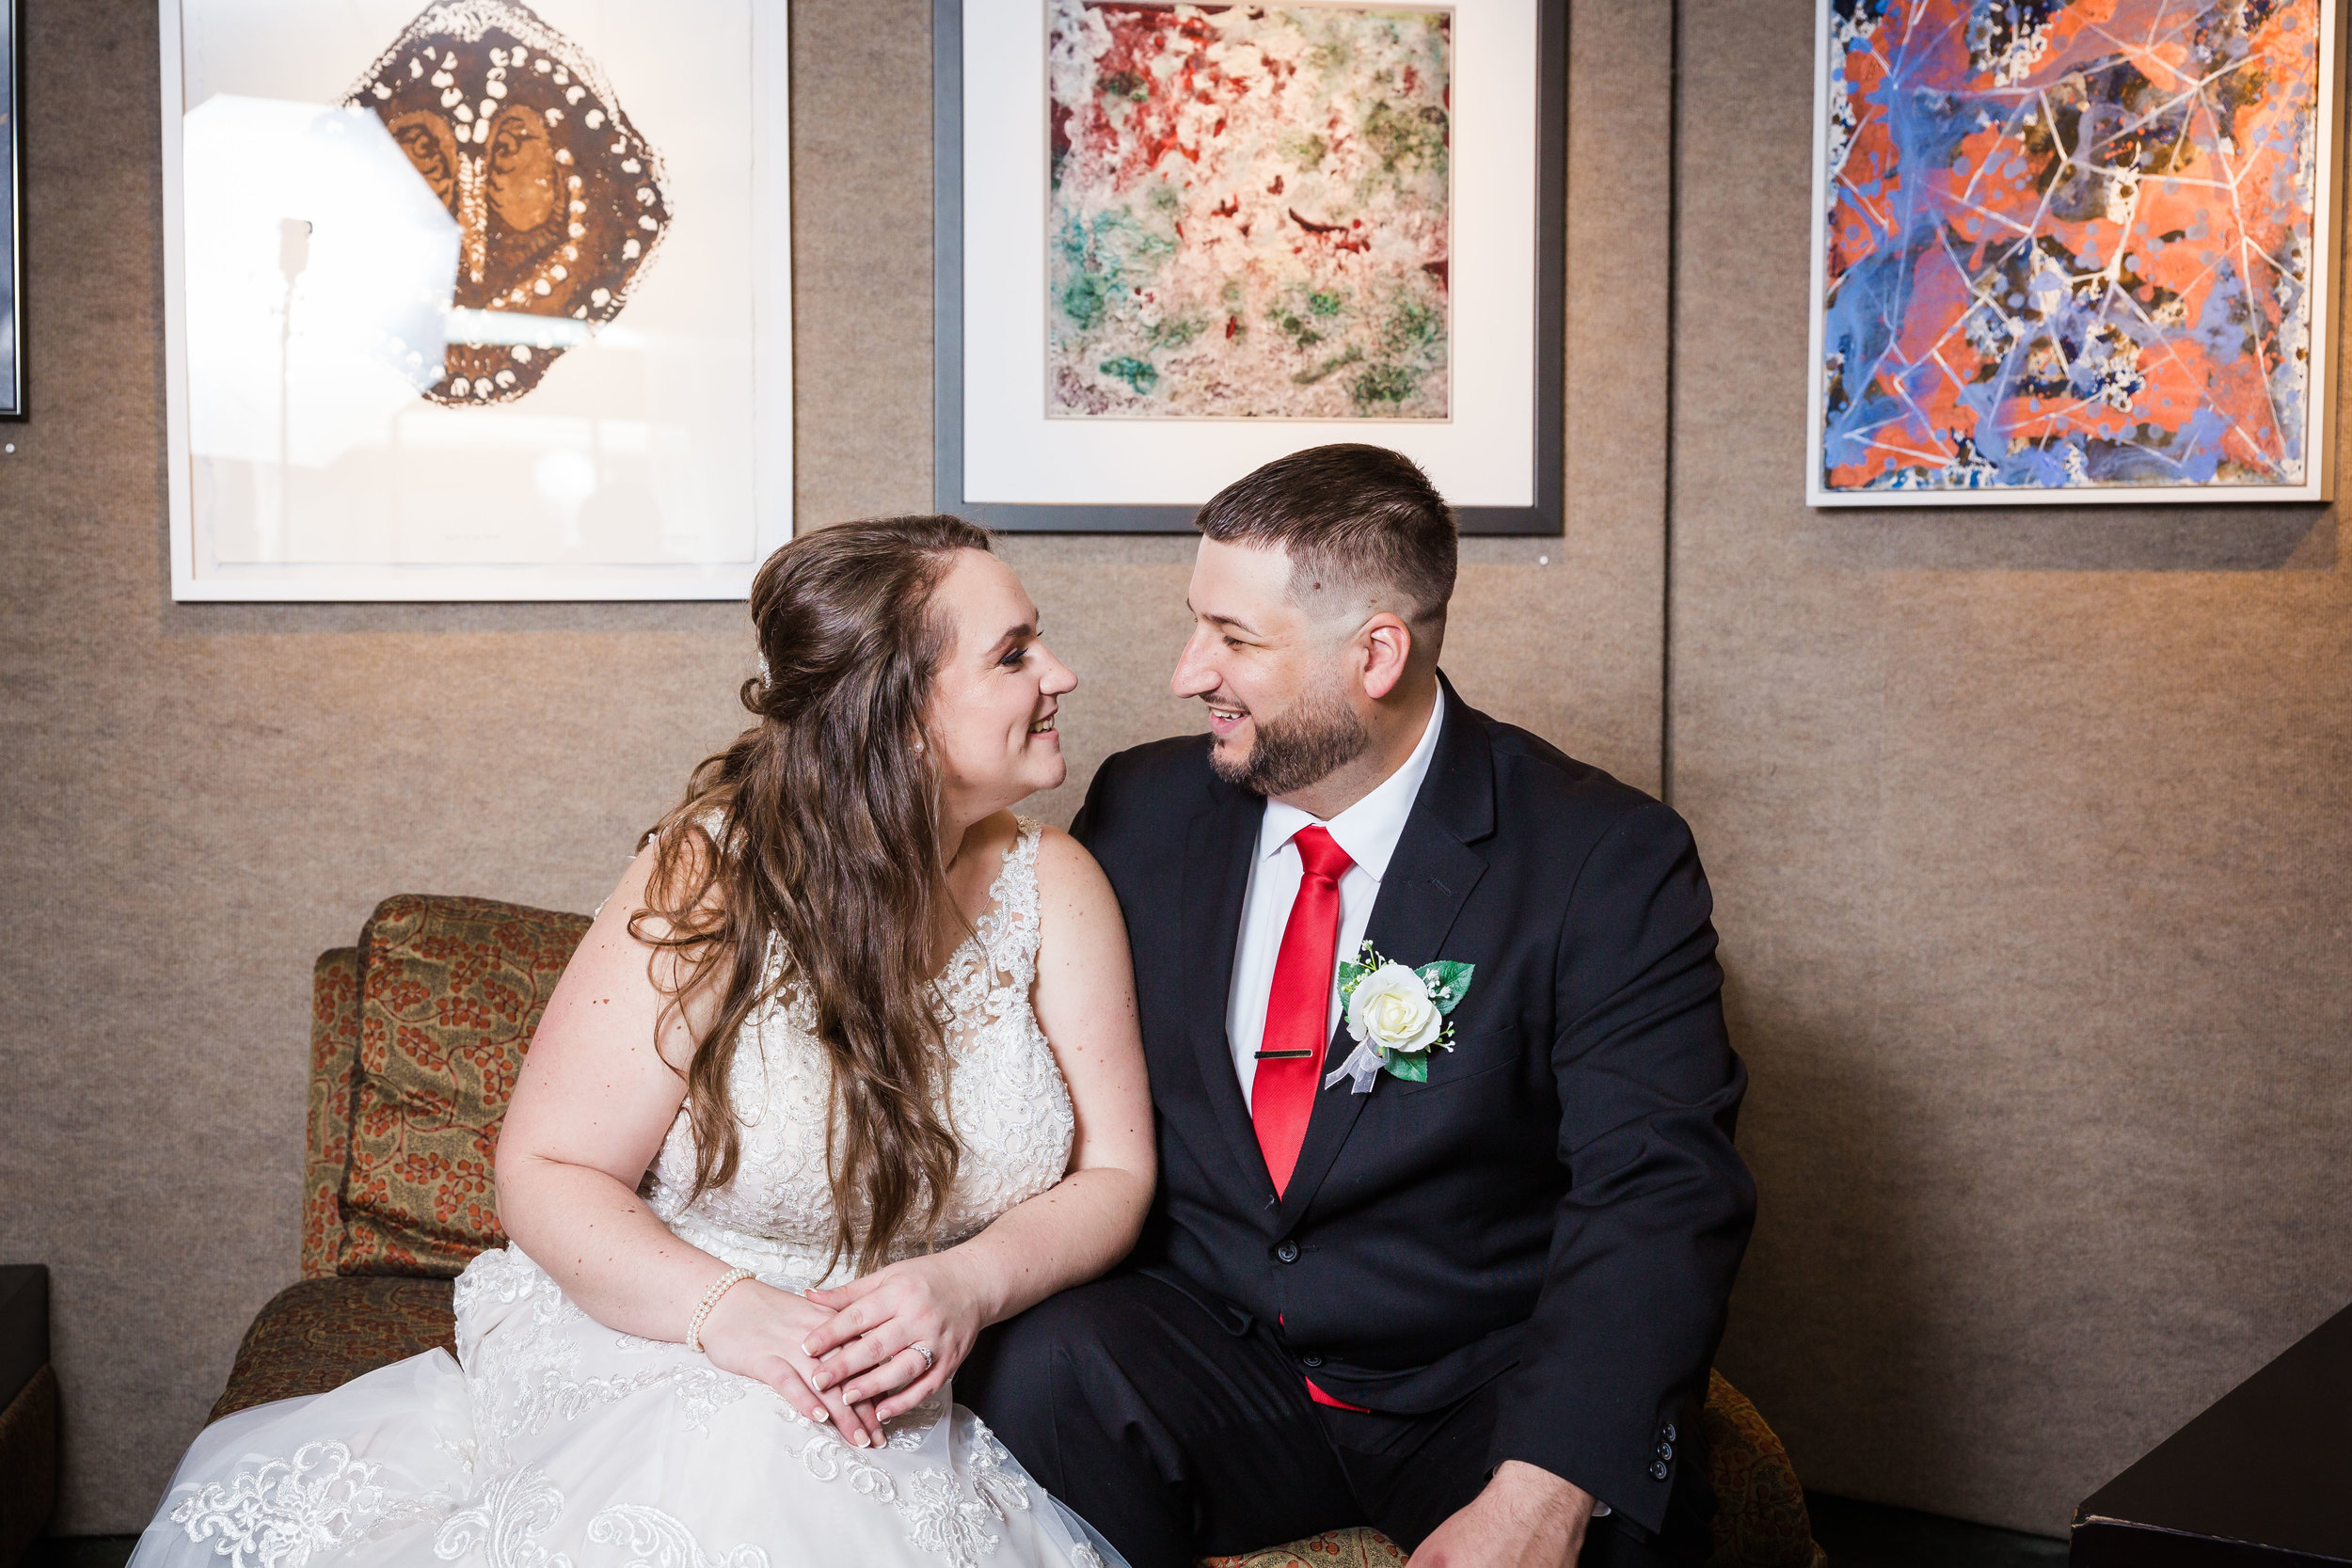 CHAUNCEY HOTEL AND CONFERENCE CENTER WEDDING PHOTOGRAPHY-70.jpg